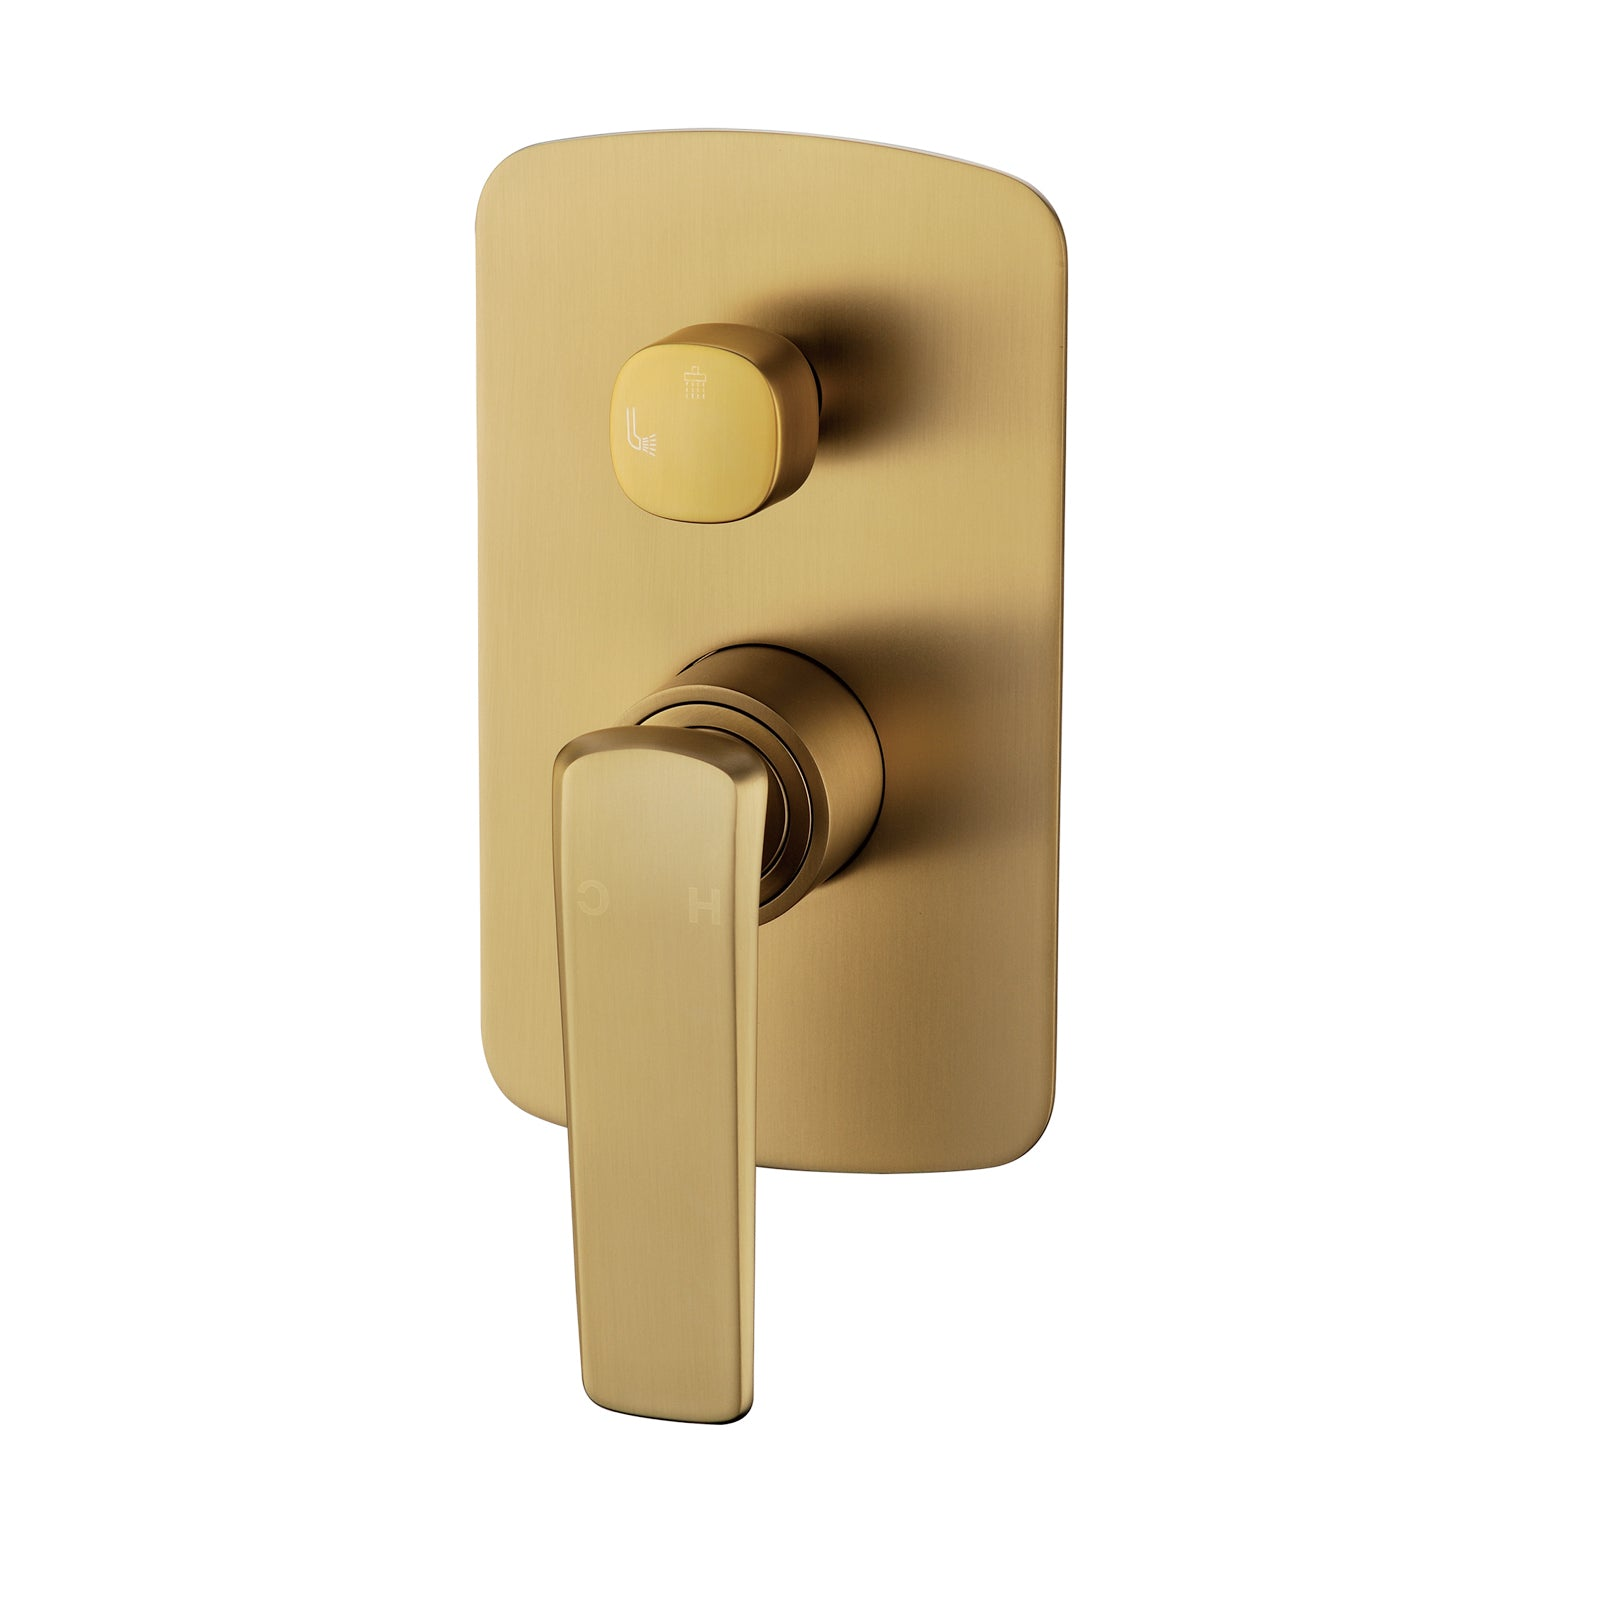 Norico Esperia Brushed Yellow Gold Wall Mixer with Diverter